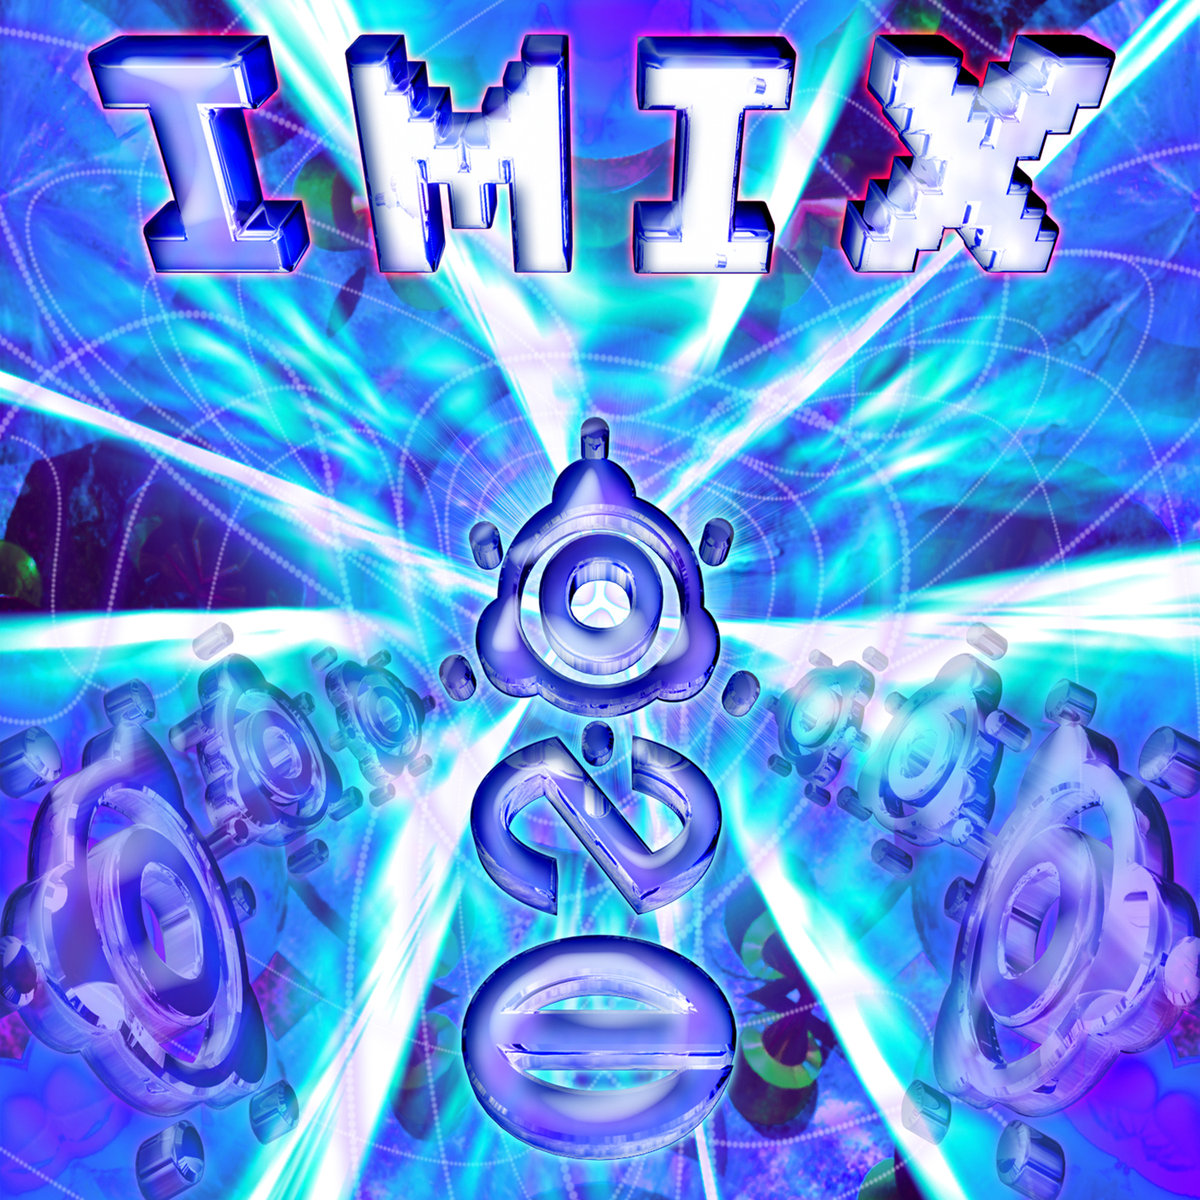 Imix - What Ya Think @ 'One' album (electronic, geomagnetic)